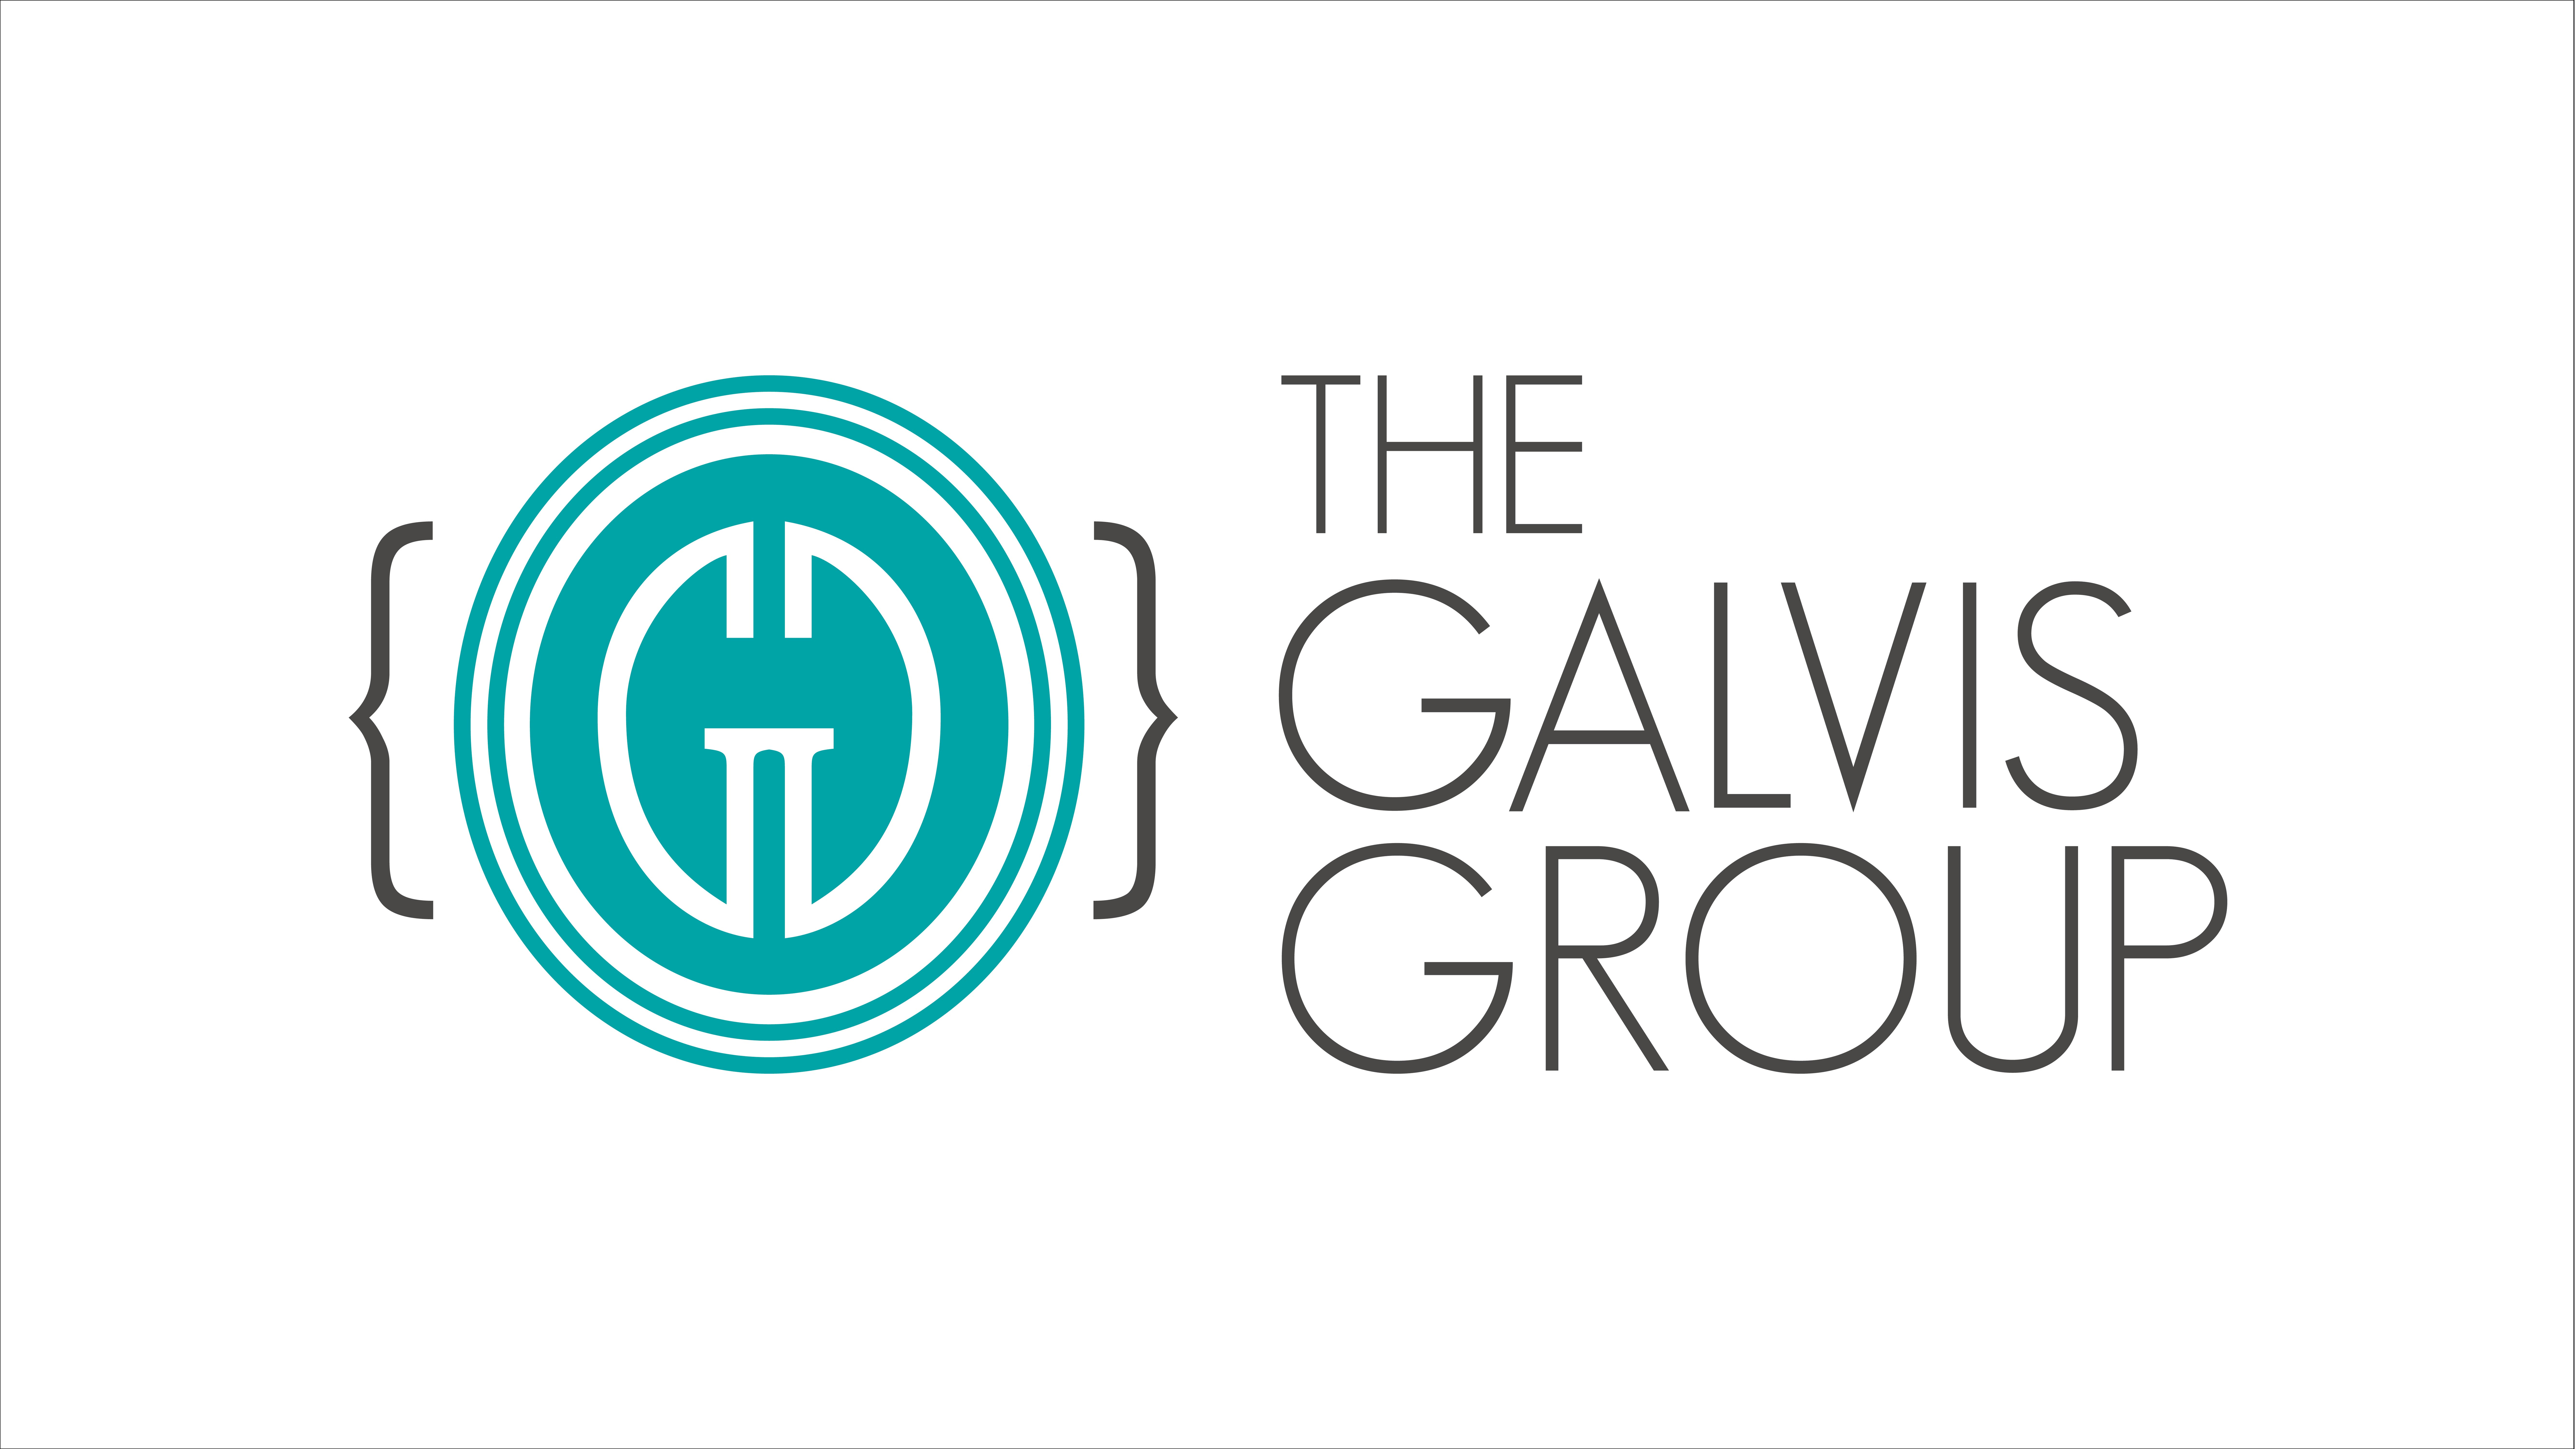 The Galvis Group